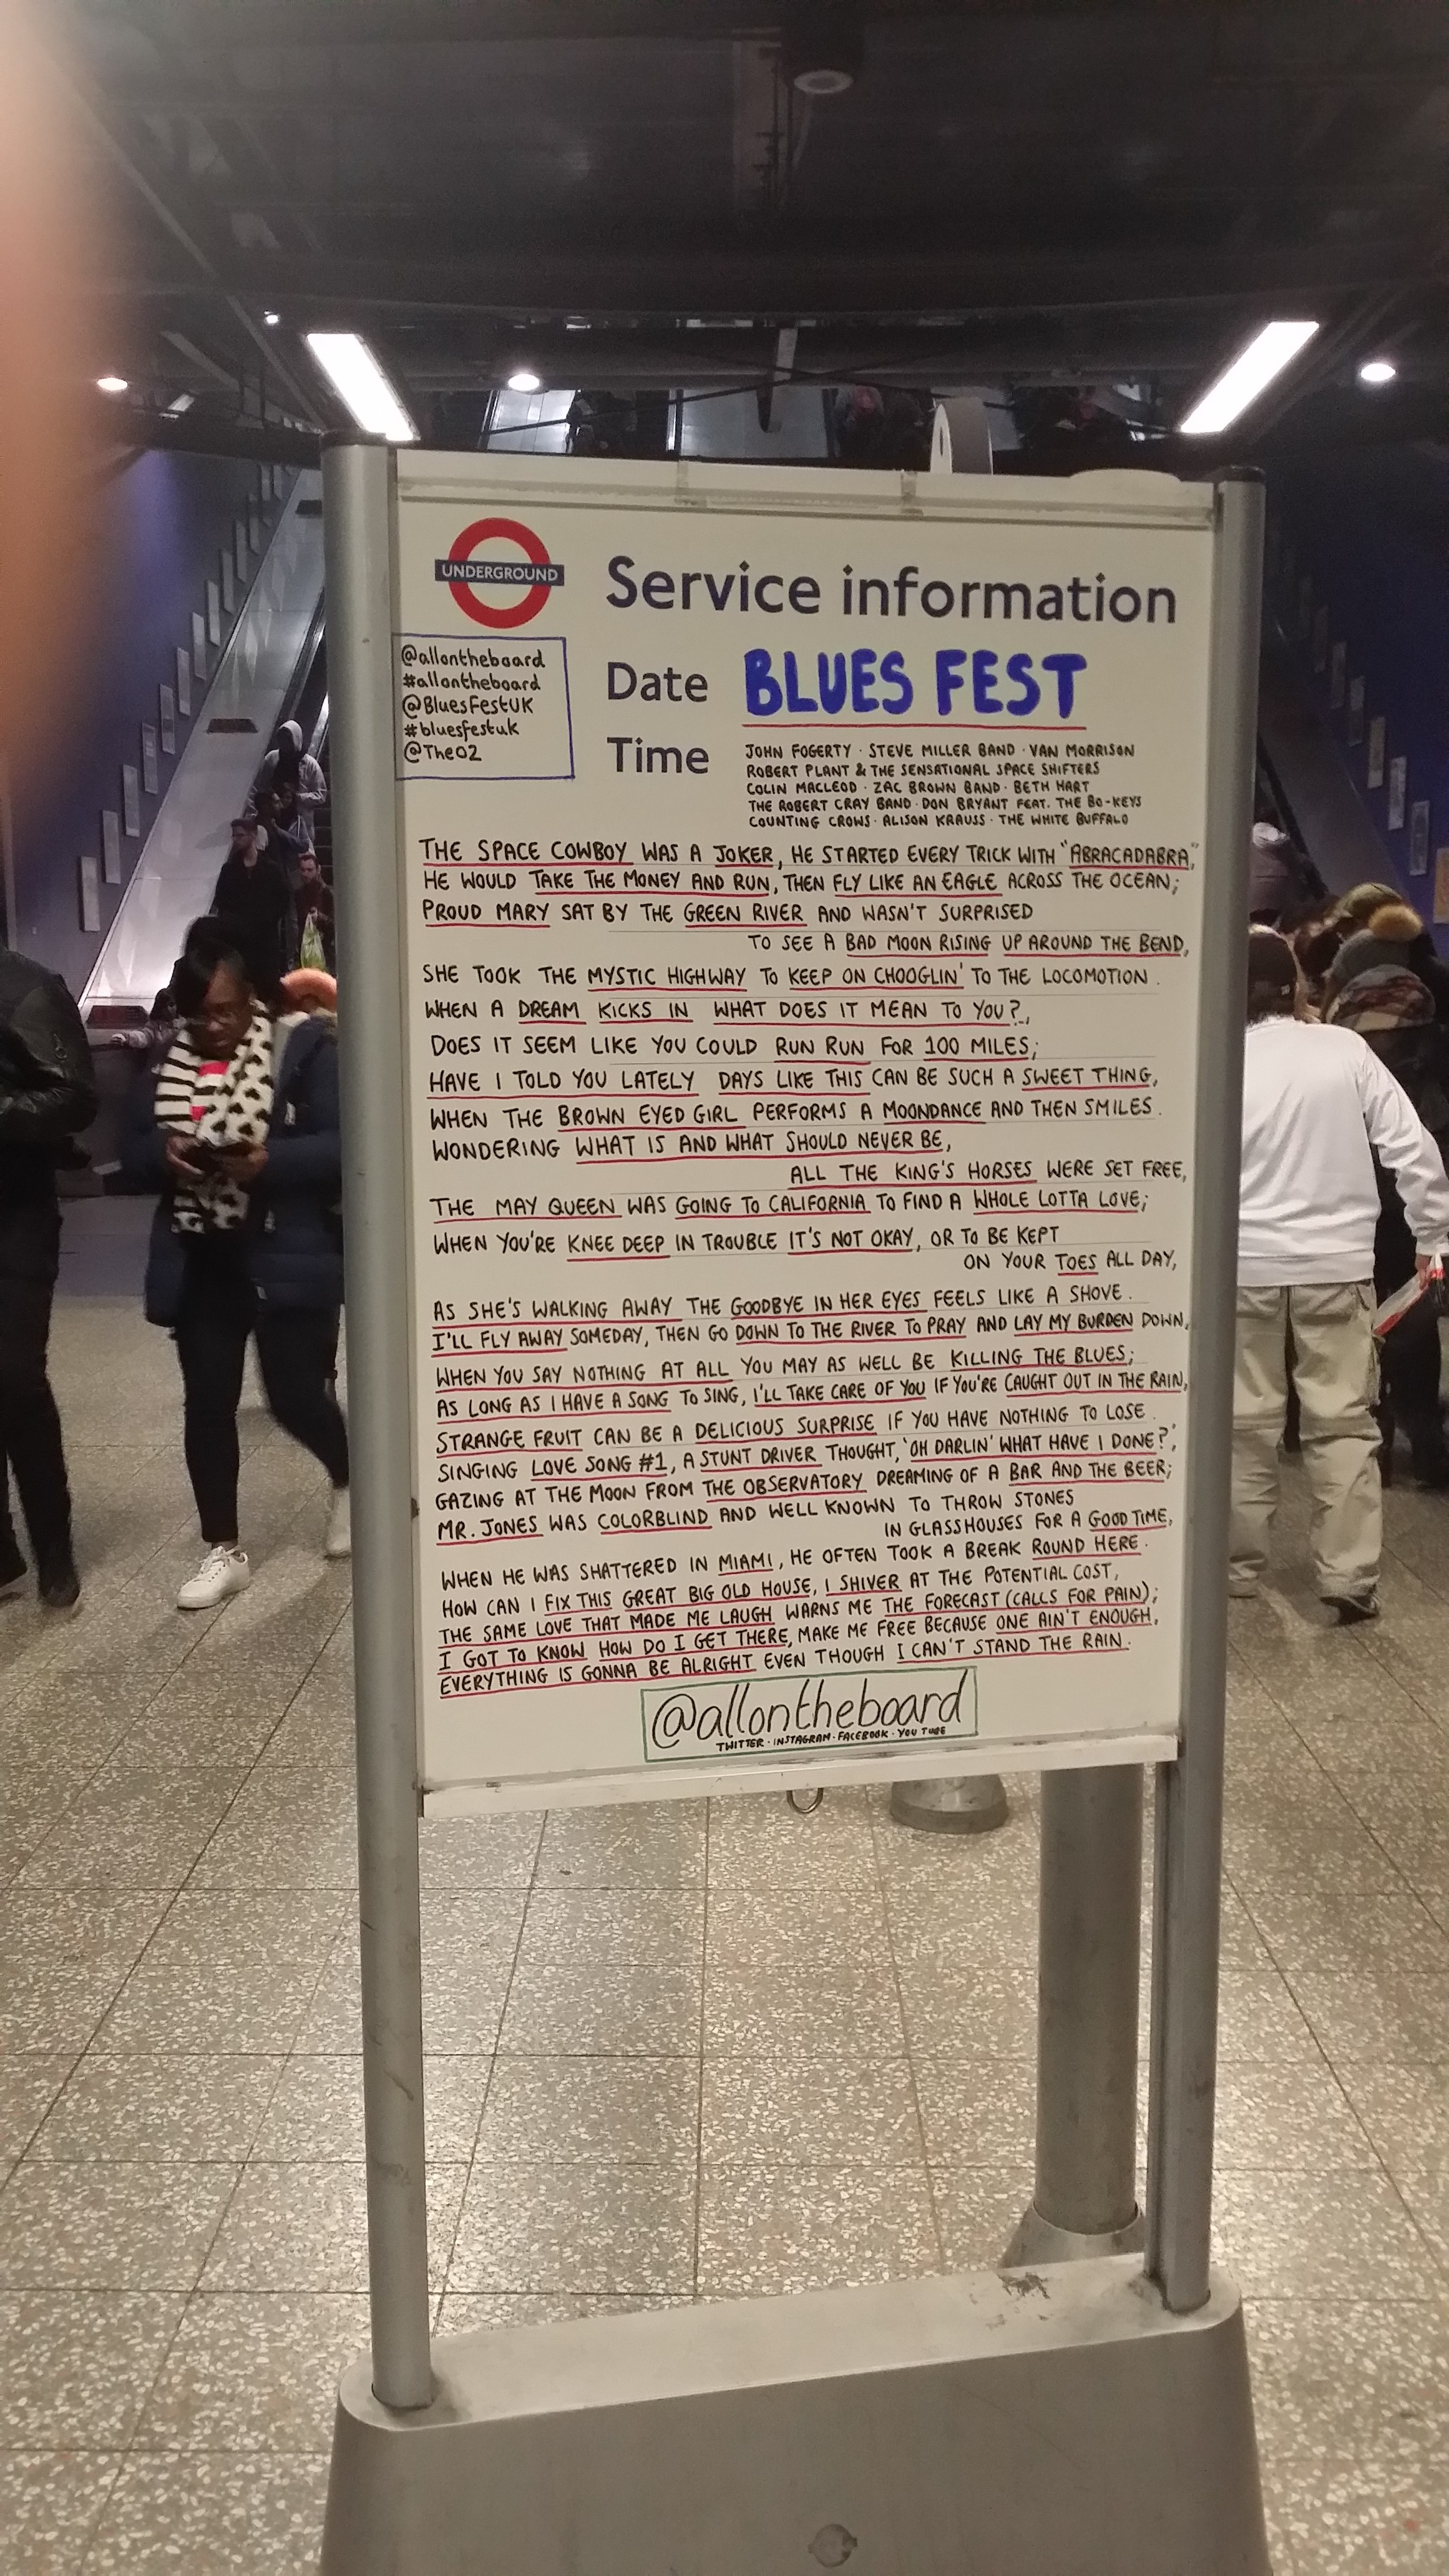 London Underground getting into the spirit of BluesFest with this impressive announcement board at North Greenwich Station.